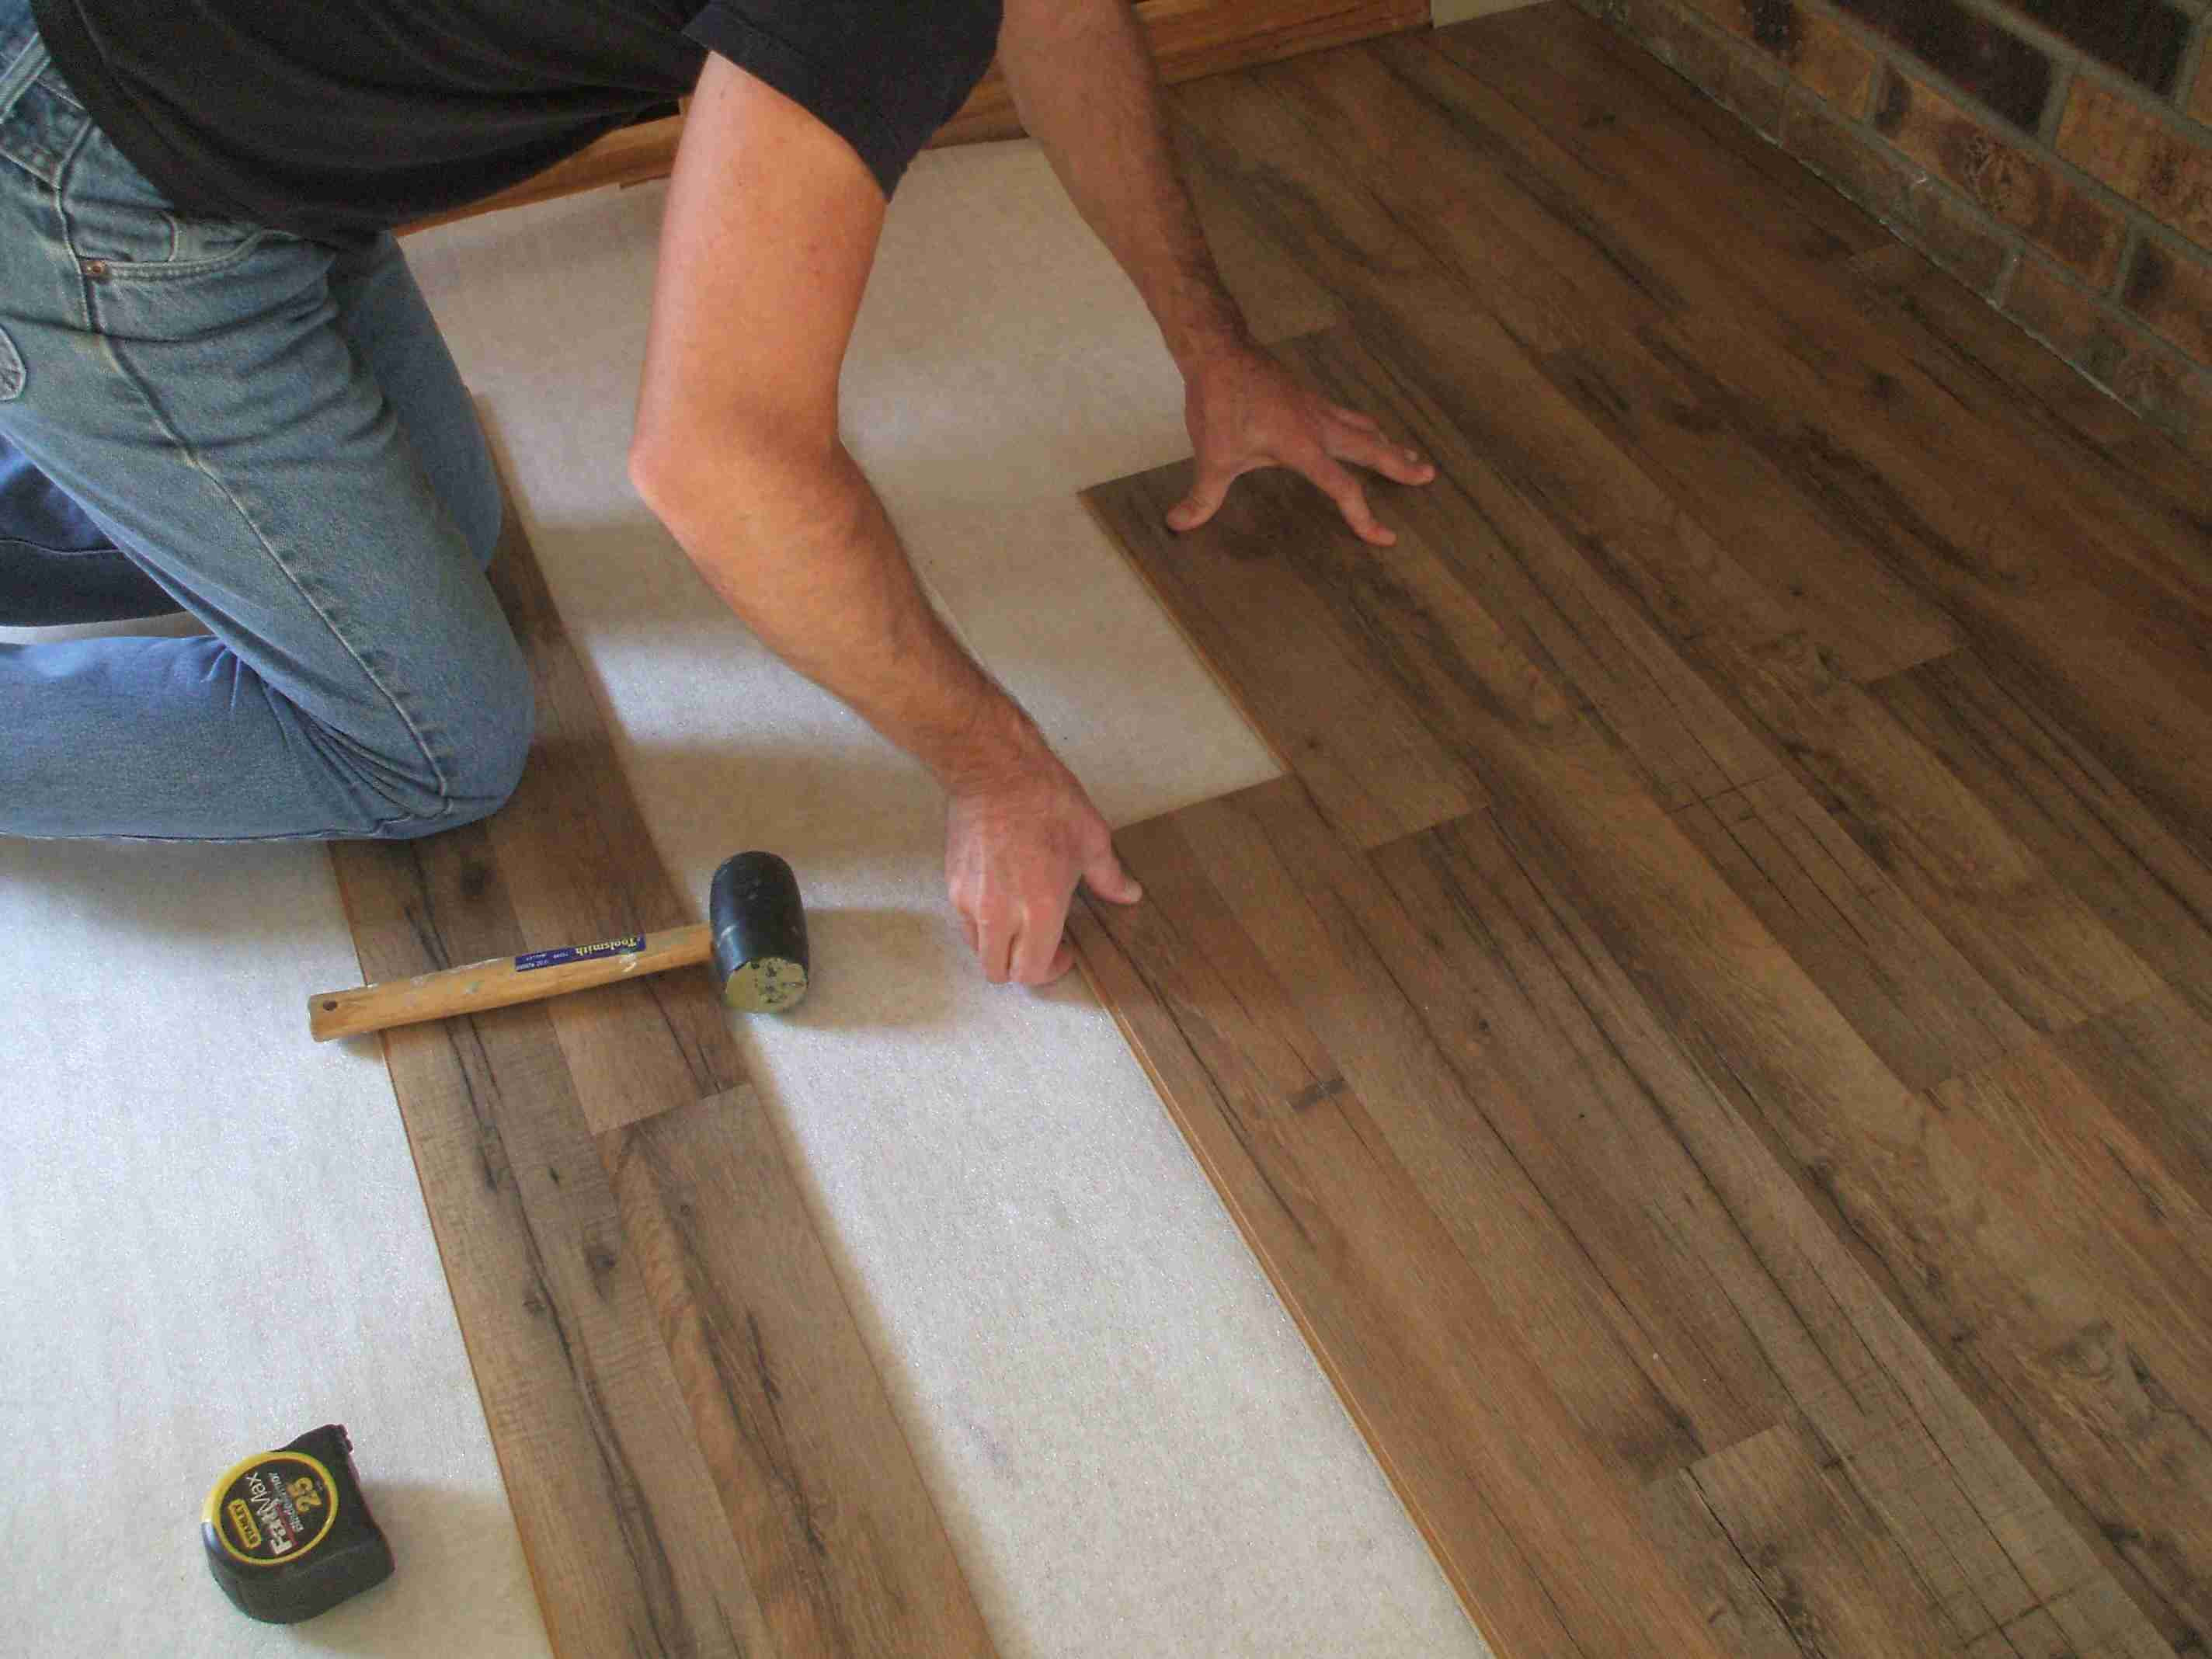 how to install hardwood floors on concrete without glue of laminate flooring installation made easy with regard to installing laminate stagger joints 56a49e453df78cf772834b1f jpg